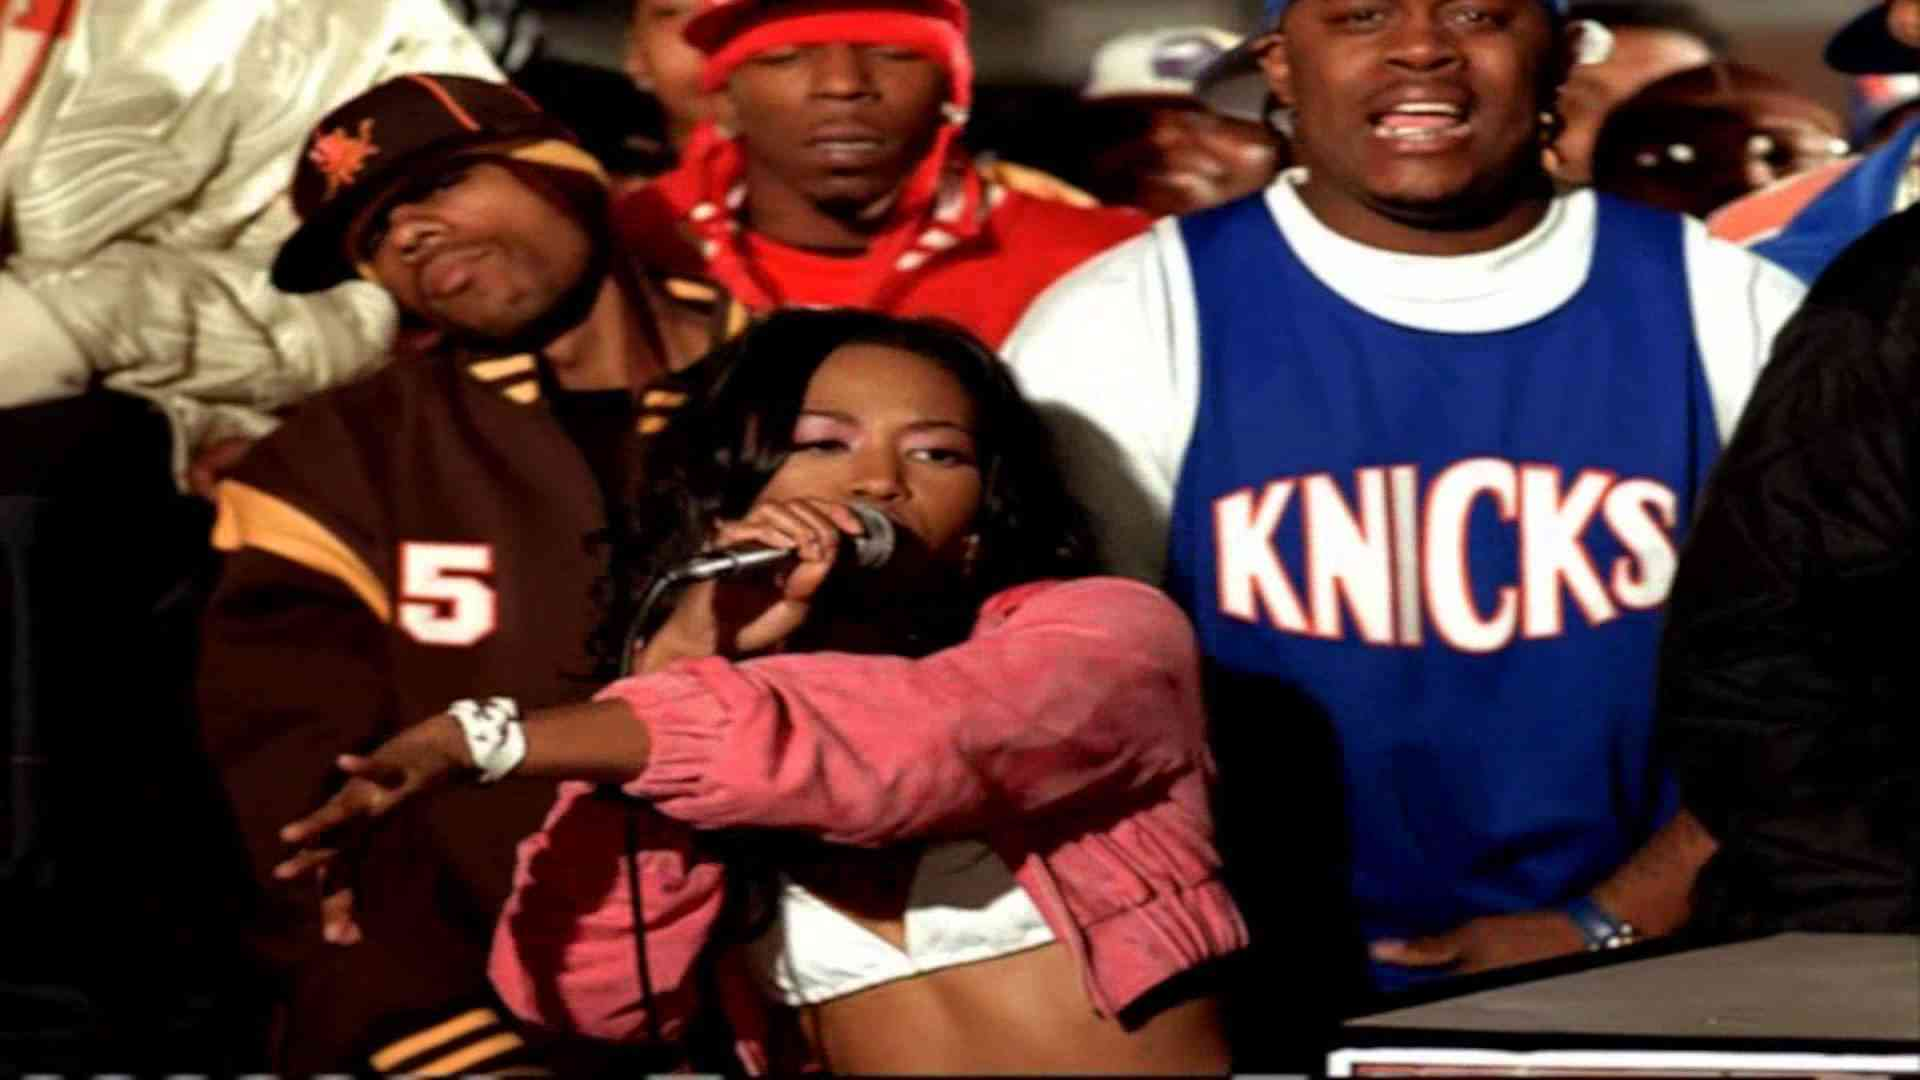 DJ Kay Slay ft. Amerie, Loon & Foxy Brown - Too Much For Me (HD) [Dirty] - YouTube